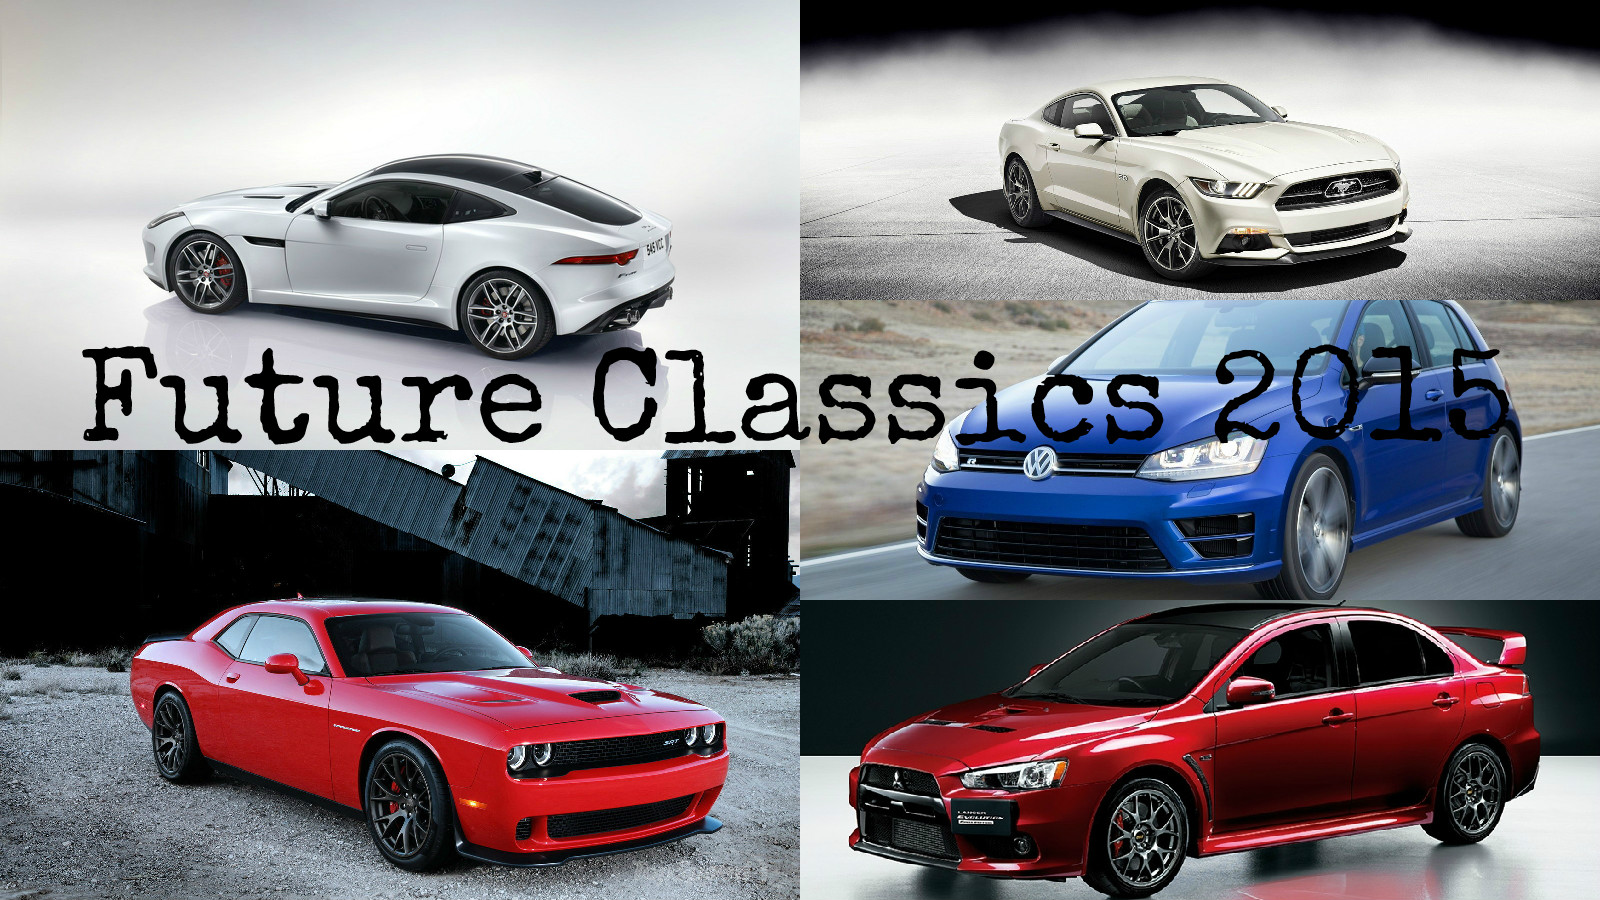 Top 5 Future Collector Cars From 2015 News - Gallery - Top Speed